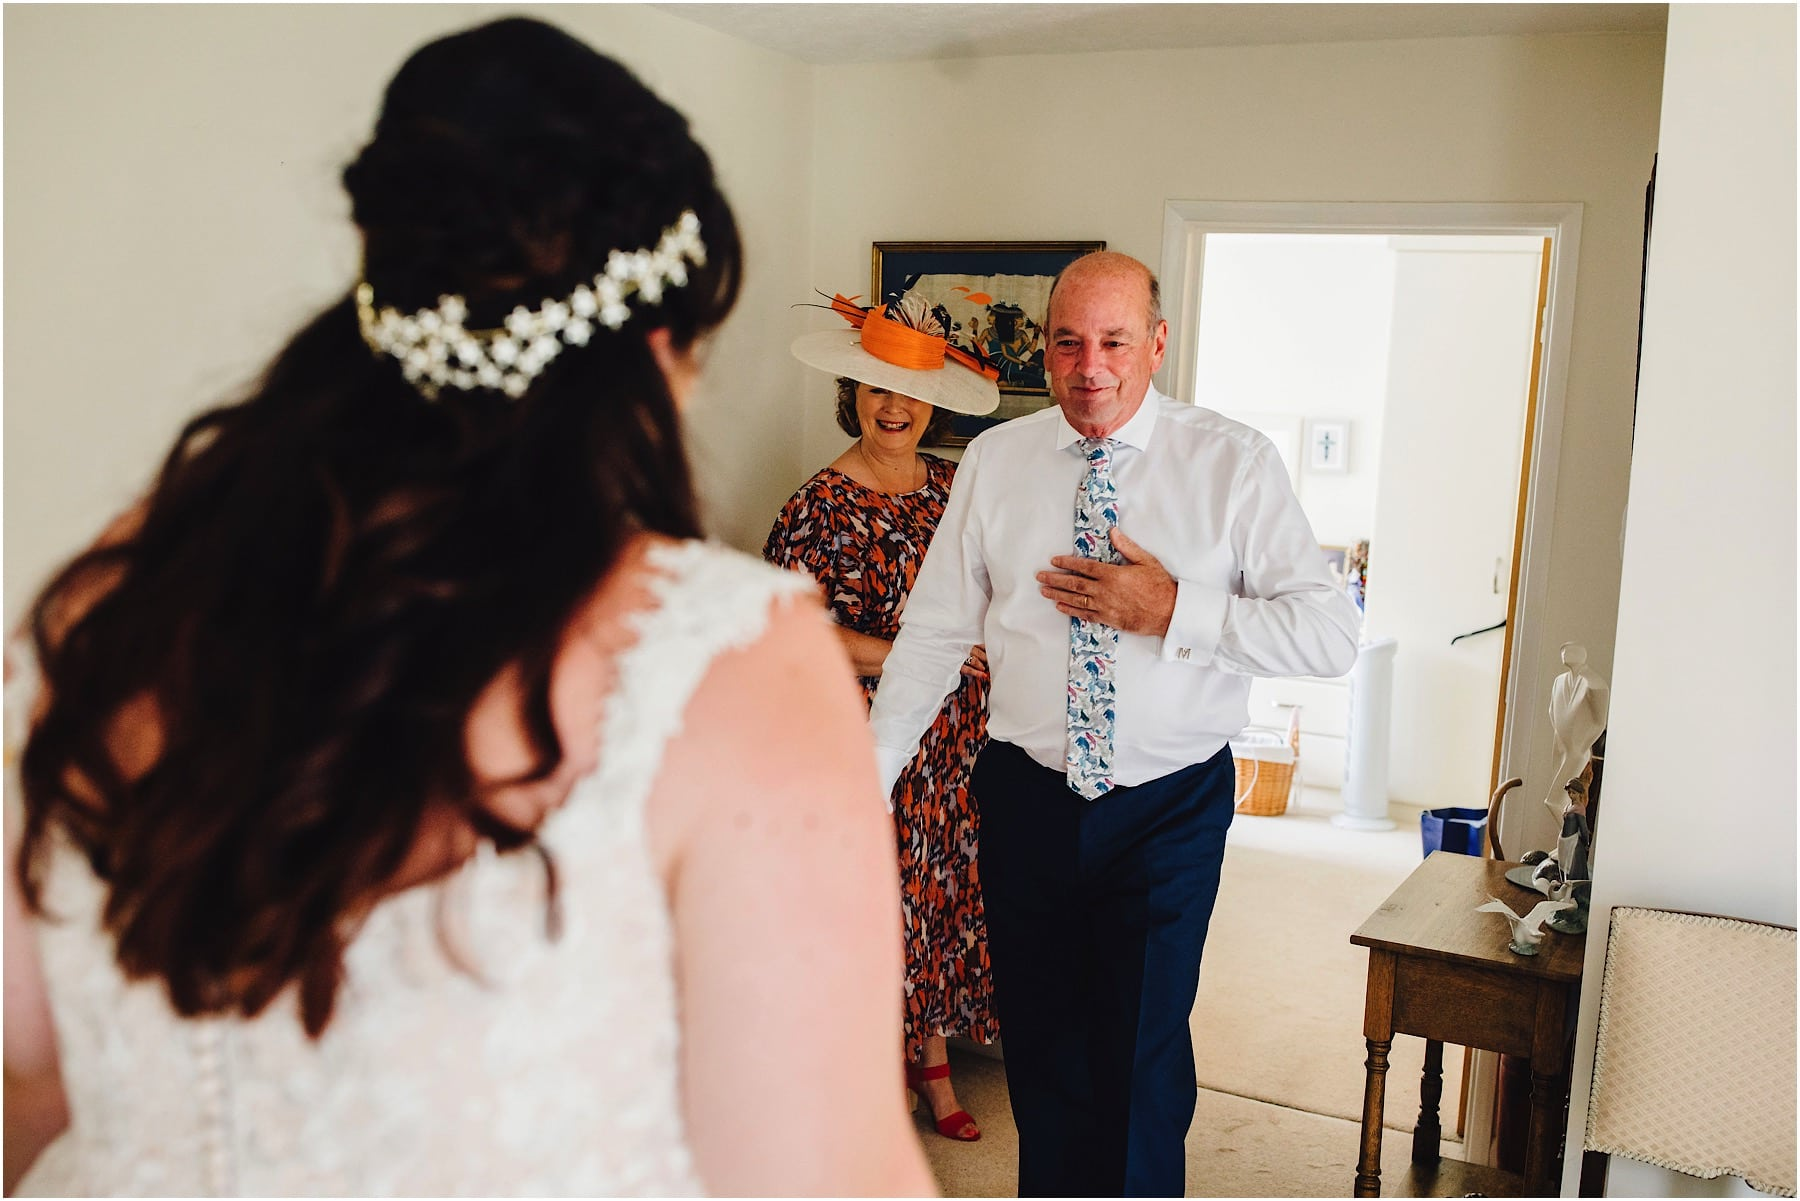 father of the bride seeing her for the first time